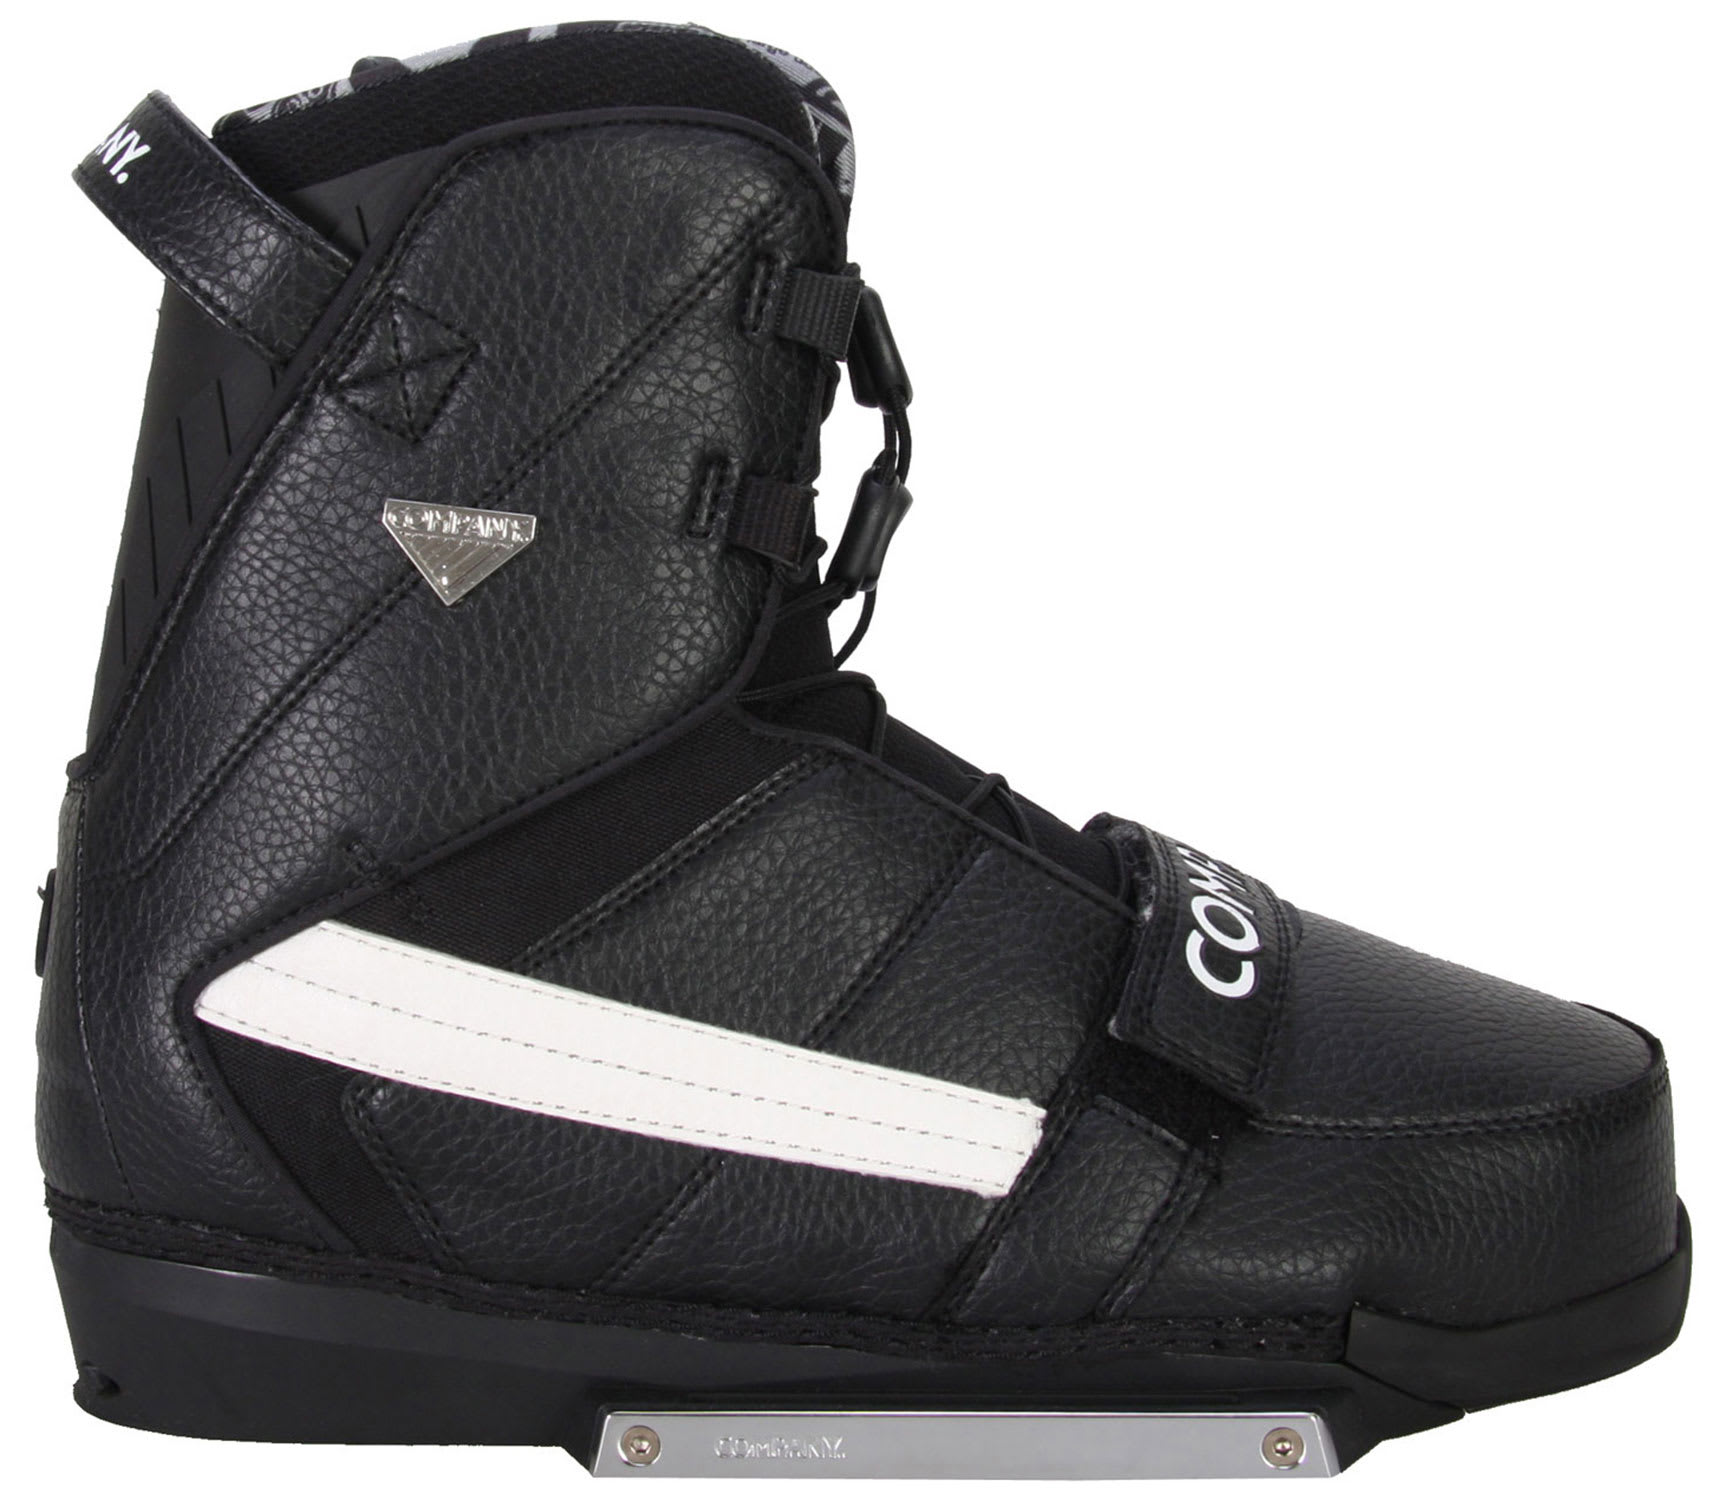 Shop for Company Pro Wakeboard Bindings Black - Men's